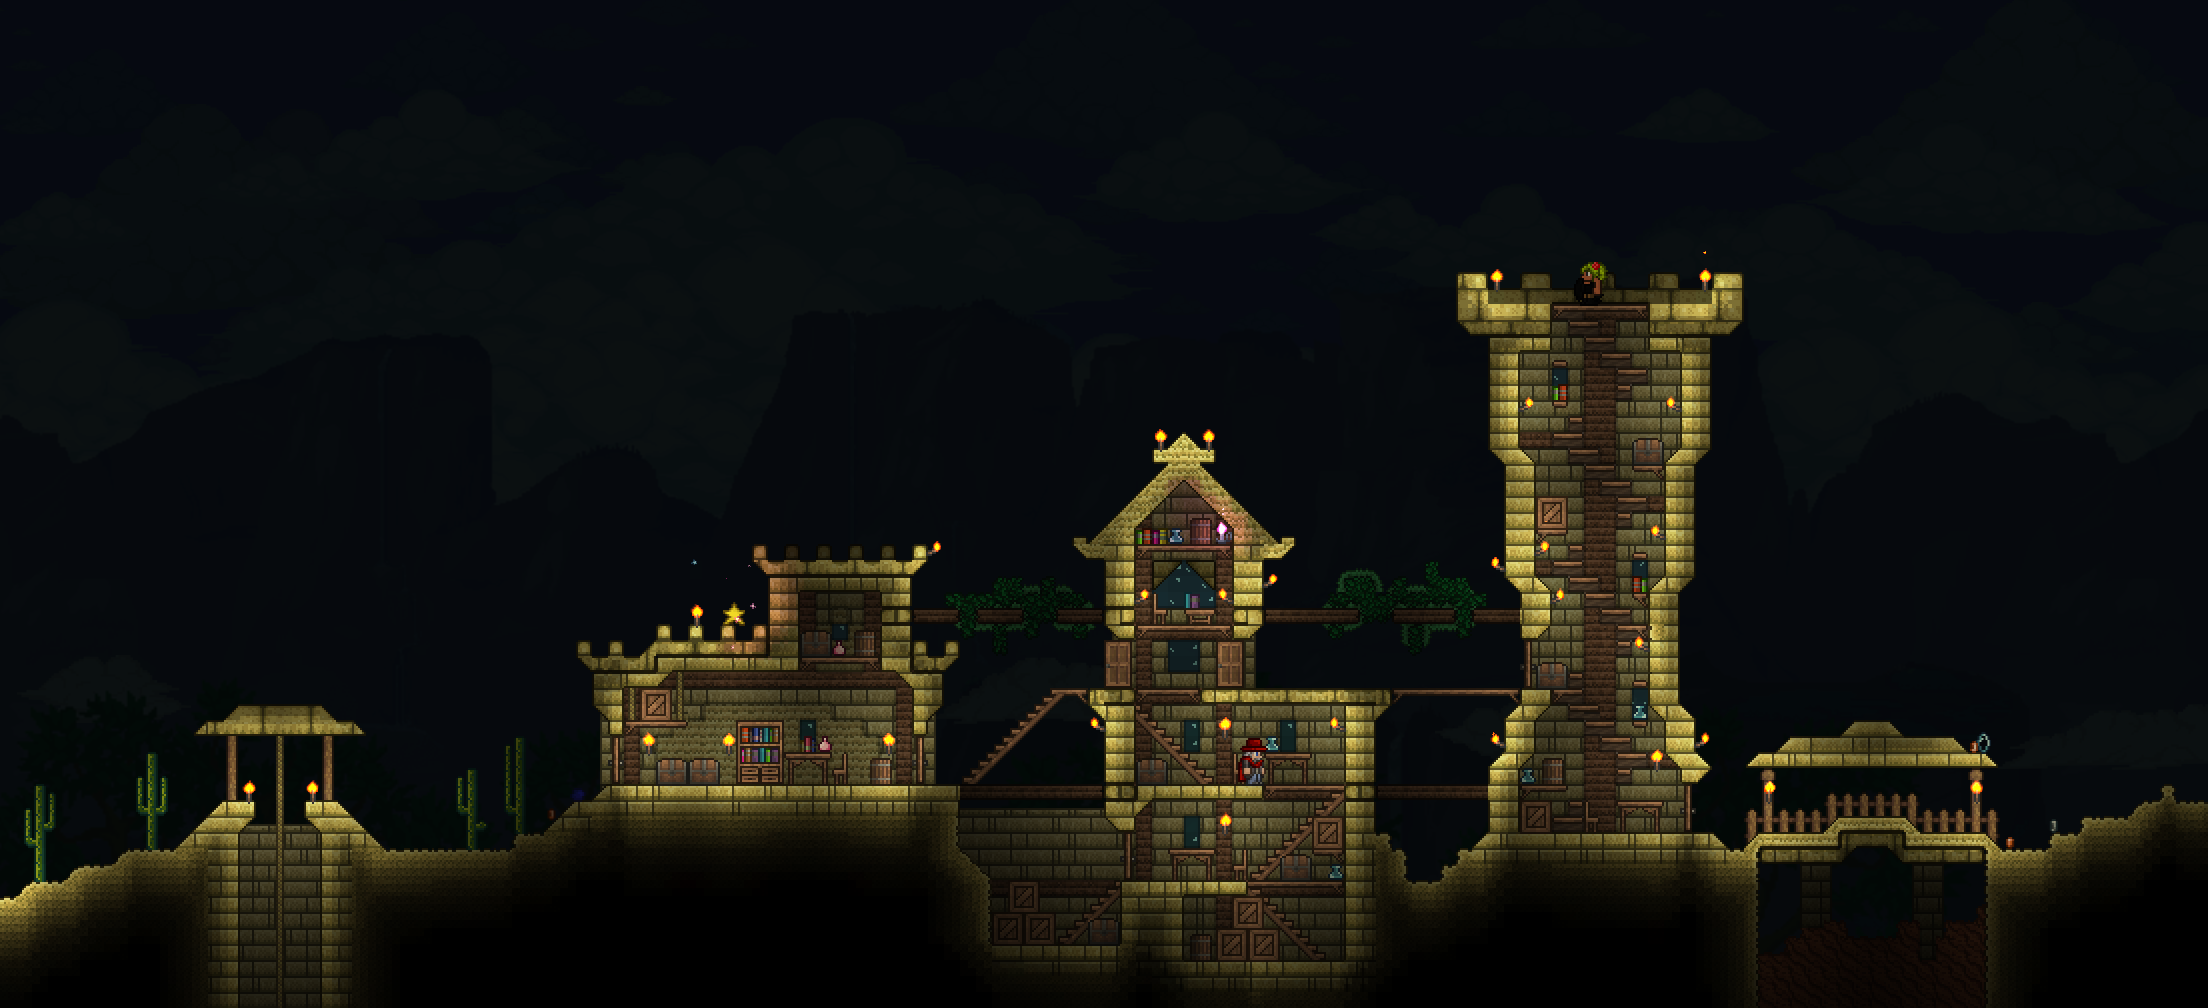 Pin By Qualiya On Terraria And Starbound Terrarium Big Ben Towns